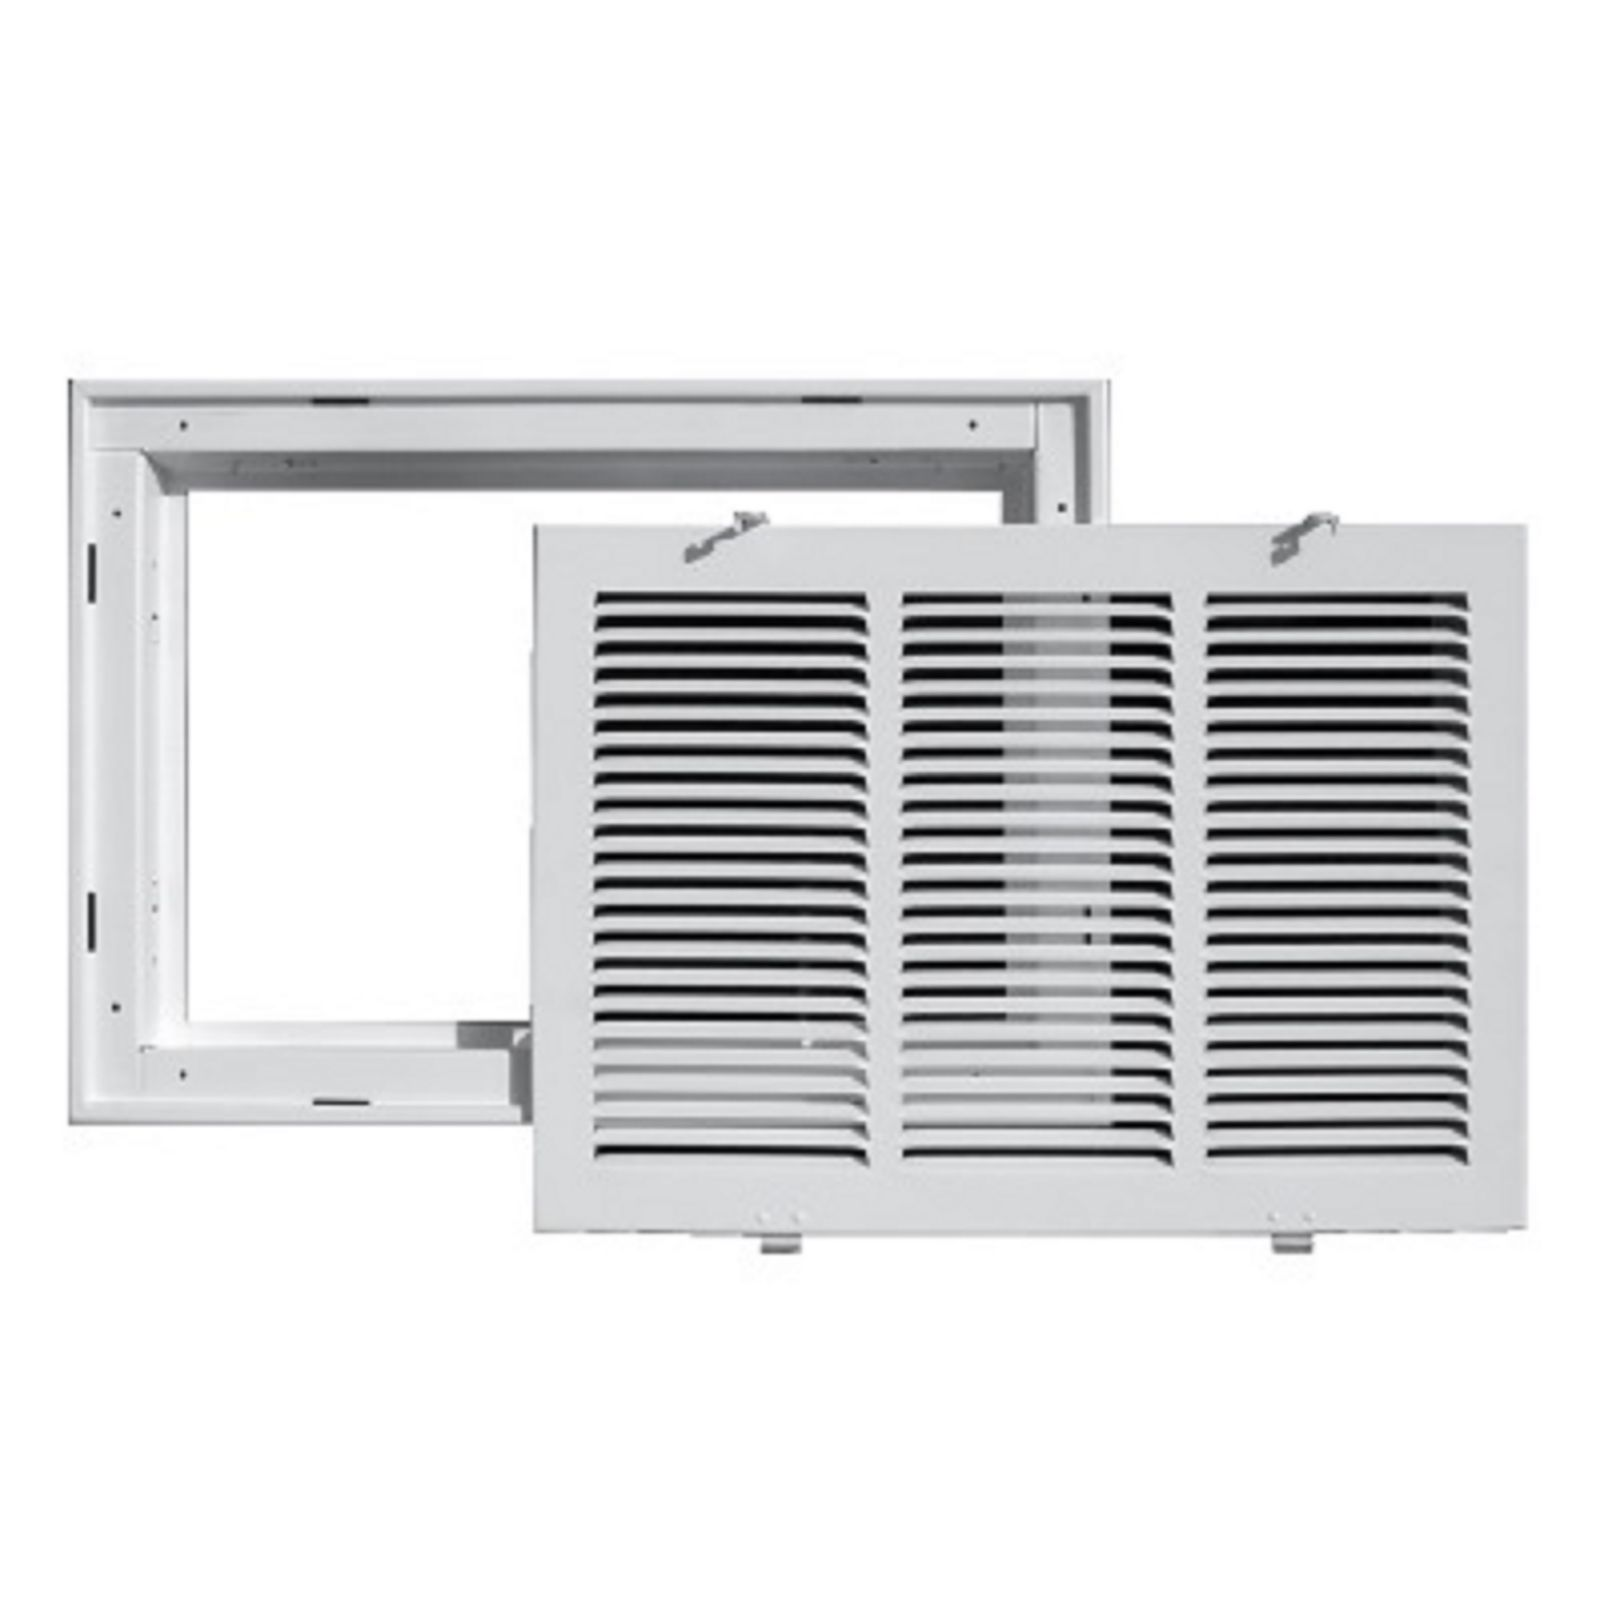 "TRUaire 190RF 10X10 - Steel Return Air Filter Grille With Removable Face, White, 10"" X 10"""